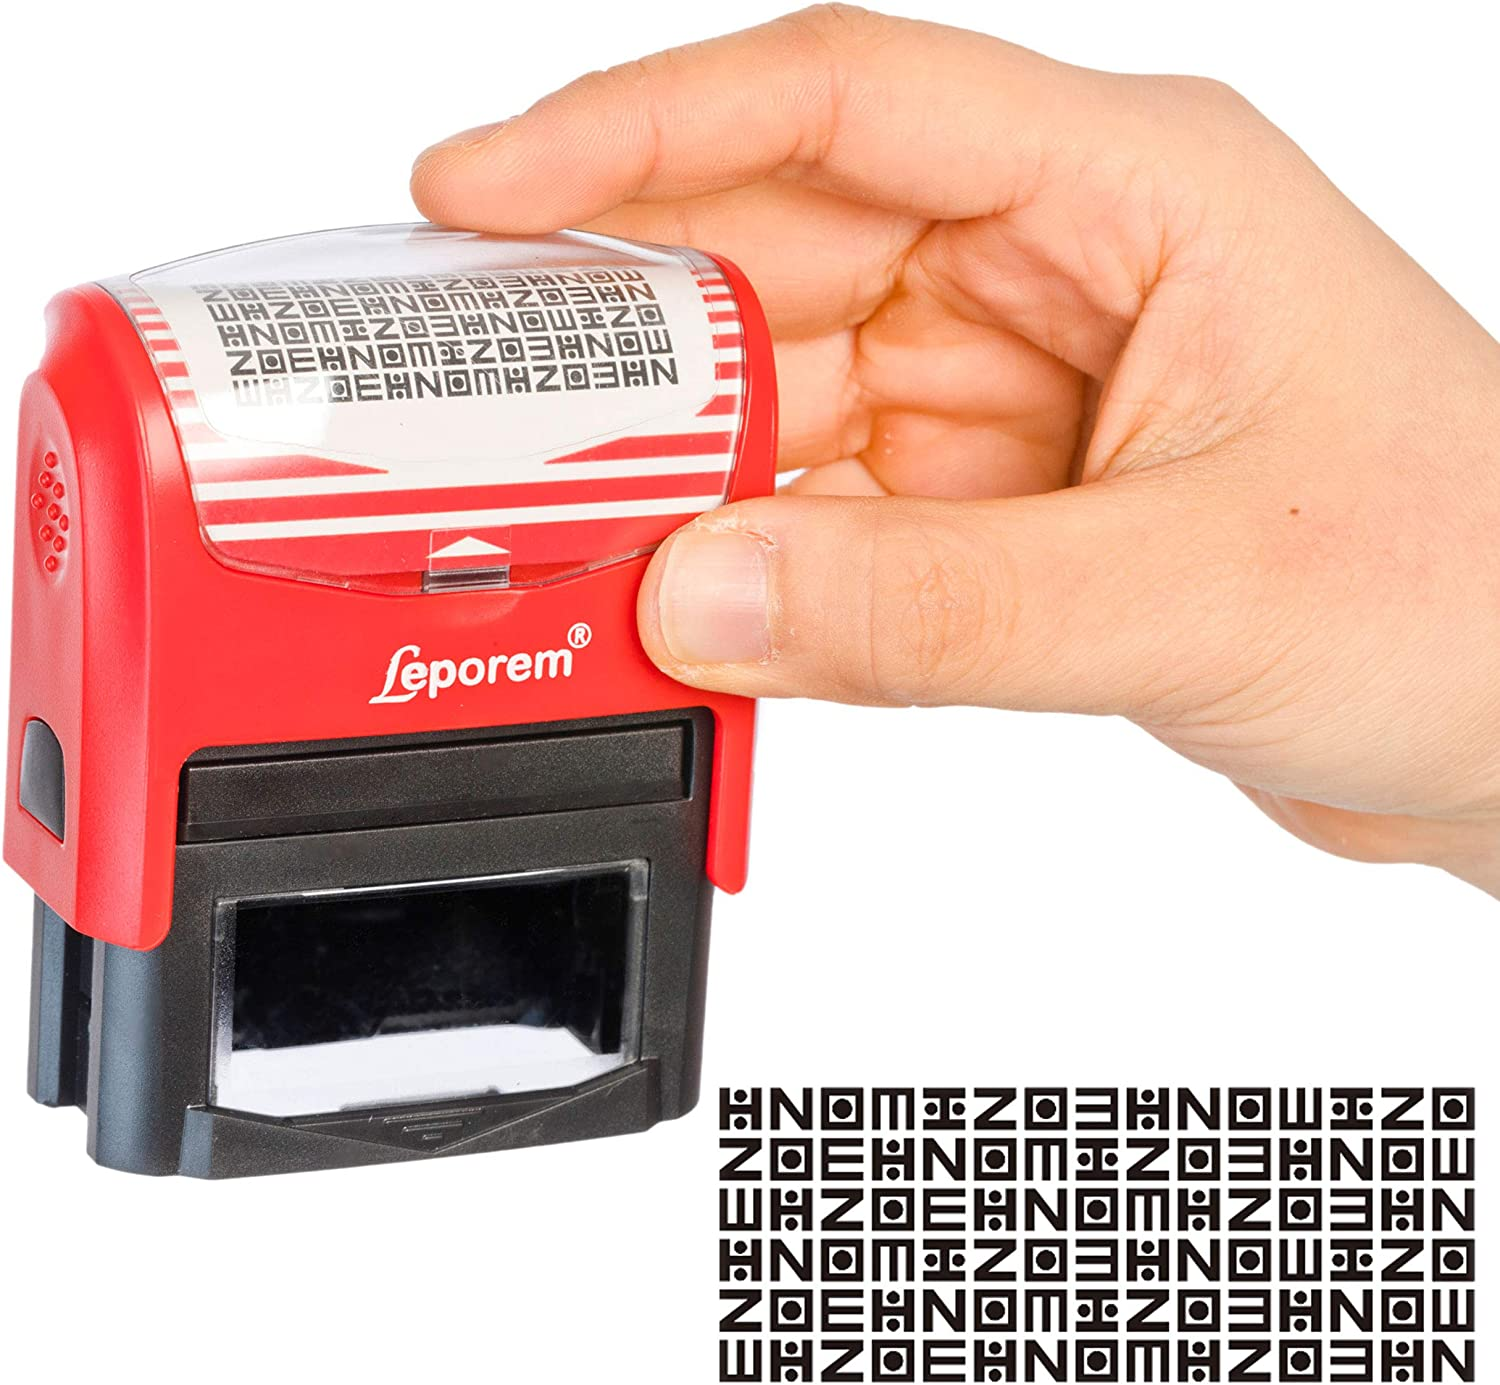 New ID Theft Protection Stamp Roller Guard Your Data Identity Security Privacy